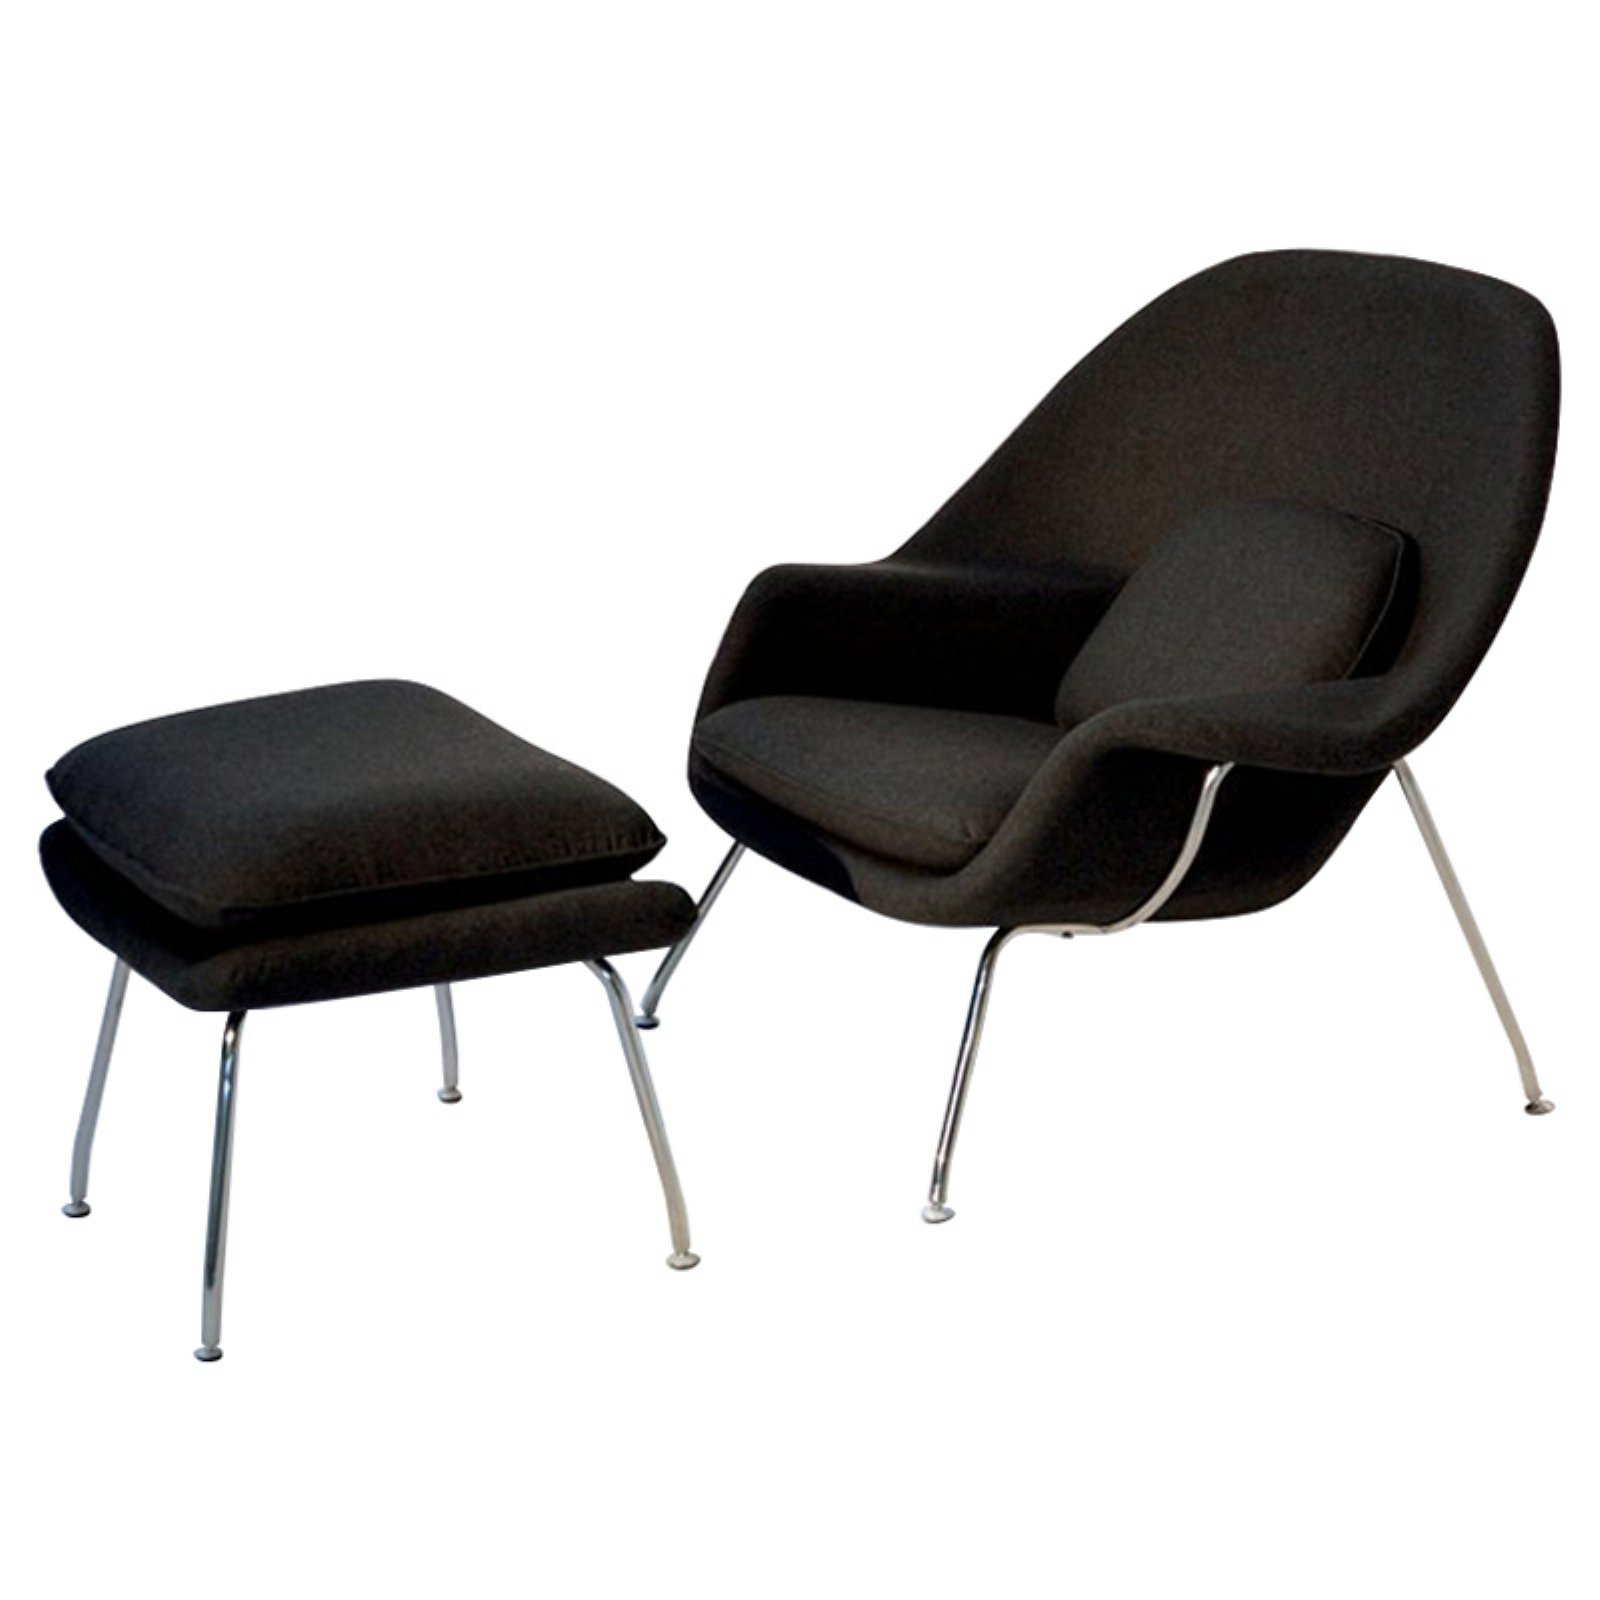 Fine Mod Imports Woom Chair & Ottoman in Black